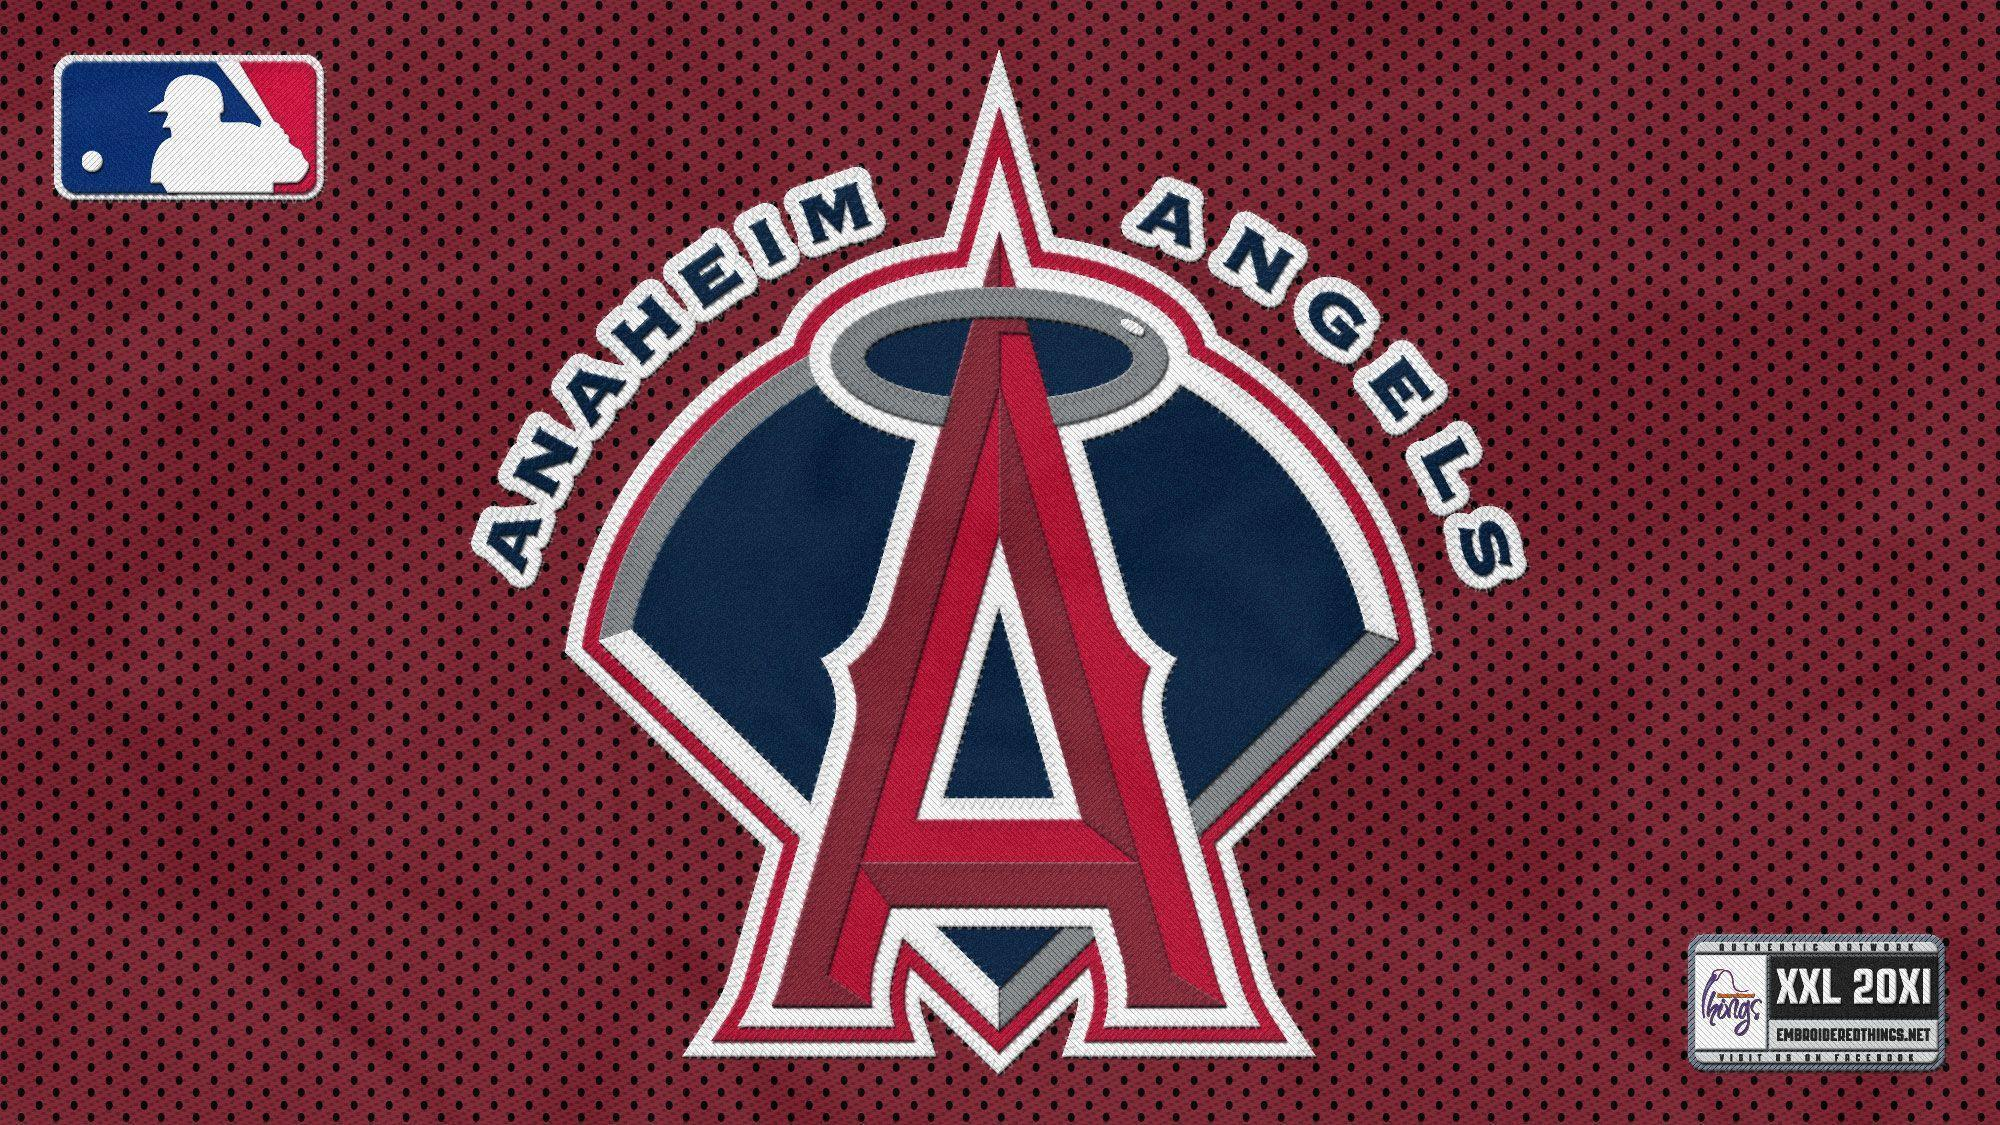 2000x1125 - Los Angeles Angels of Anaheim Wallpapers 9